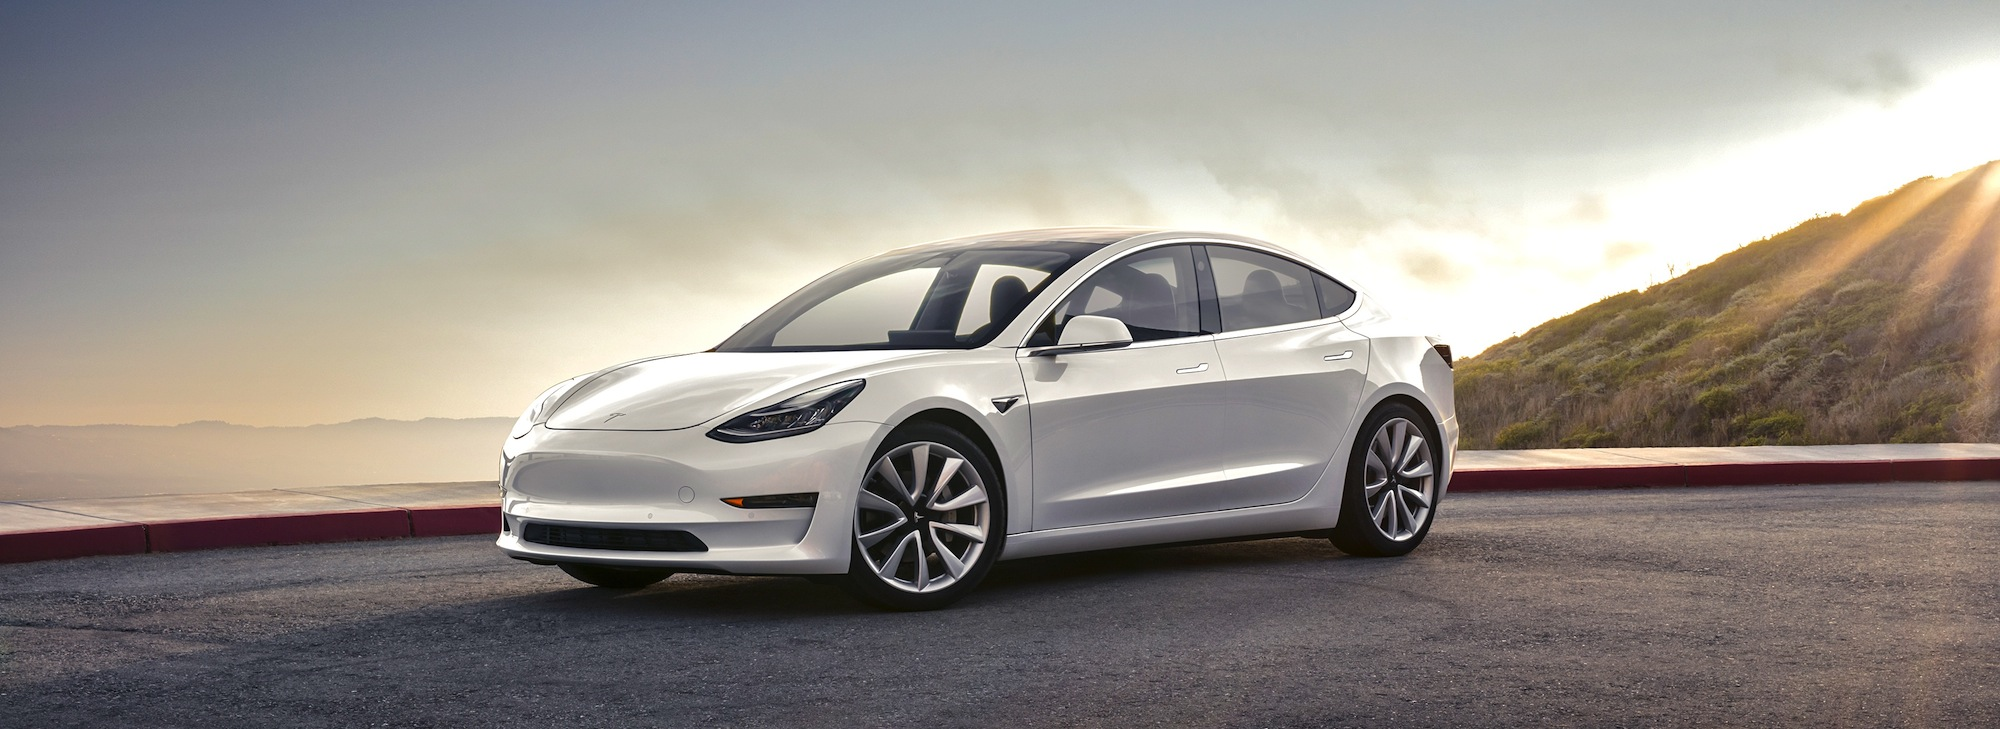 Tesla Model 3: You Can Lease One...Someday